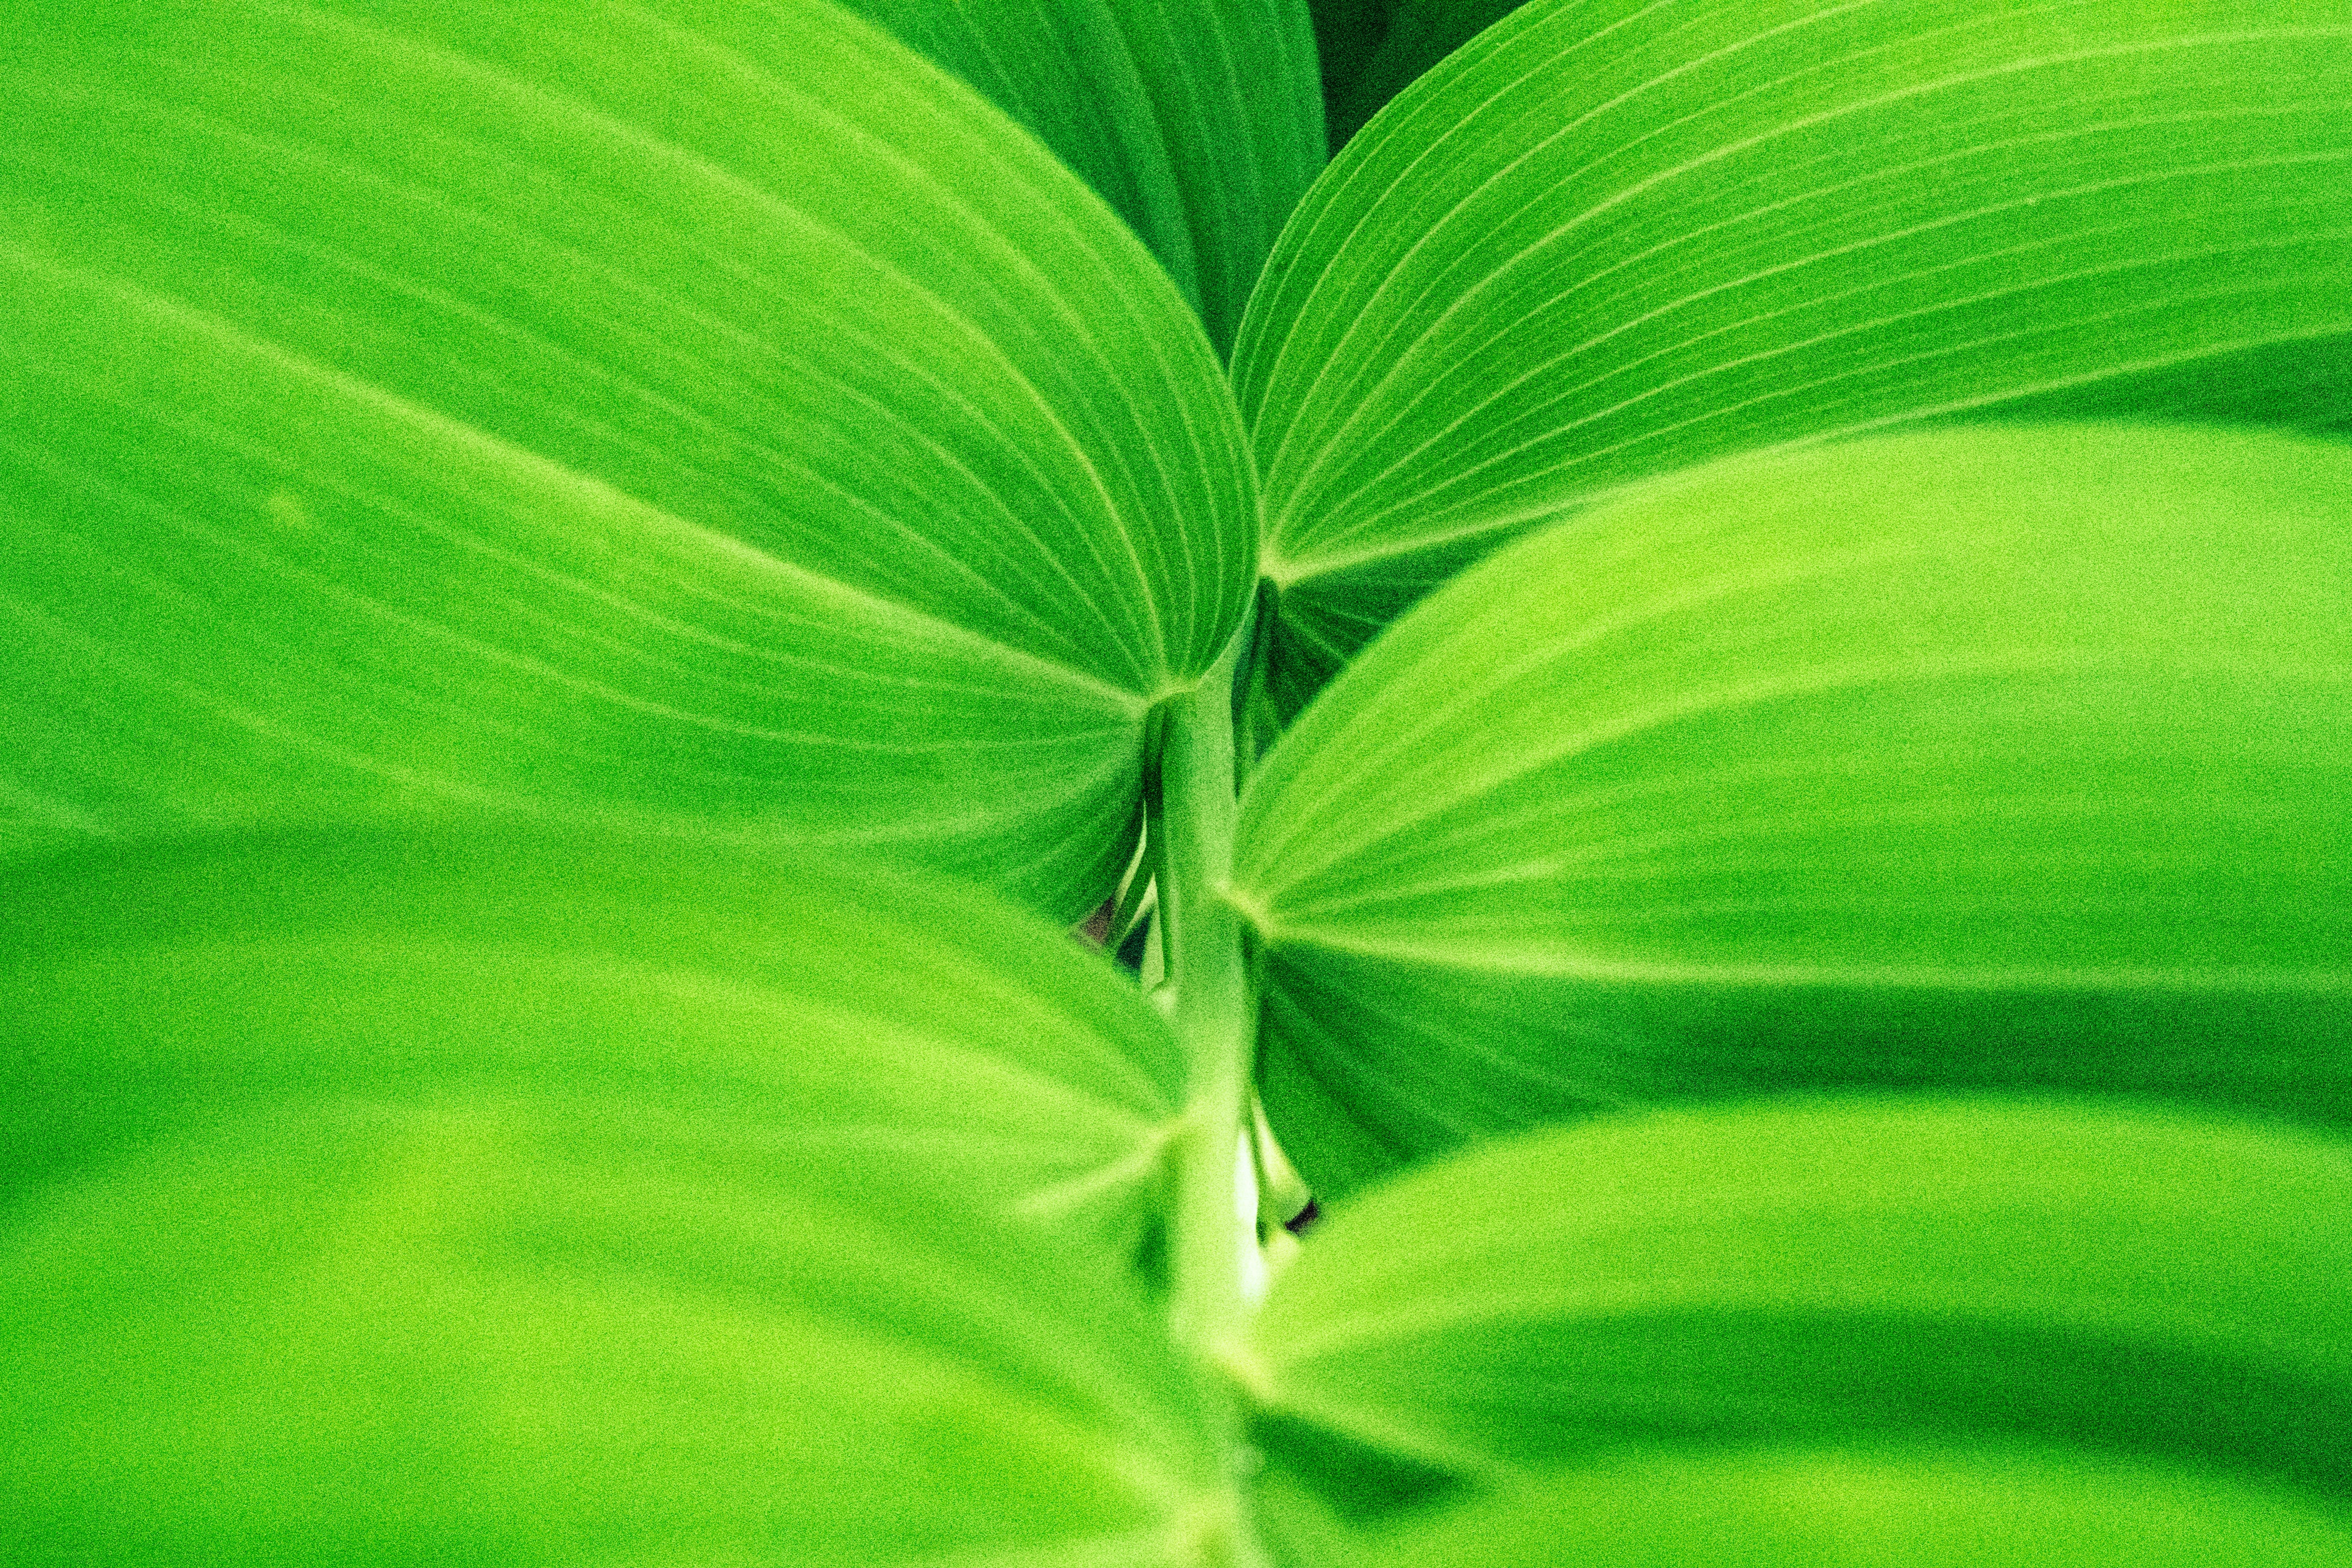 macro photography of green leave